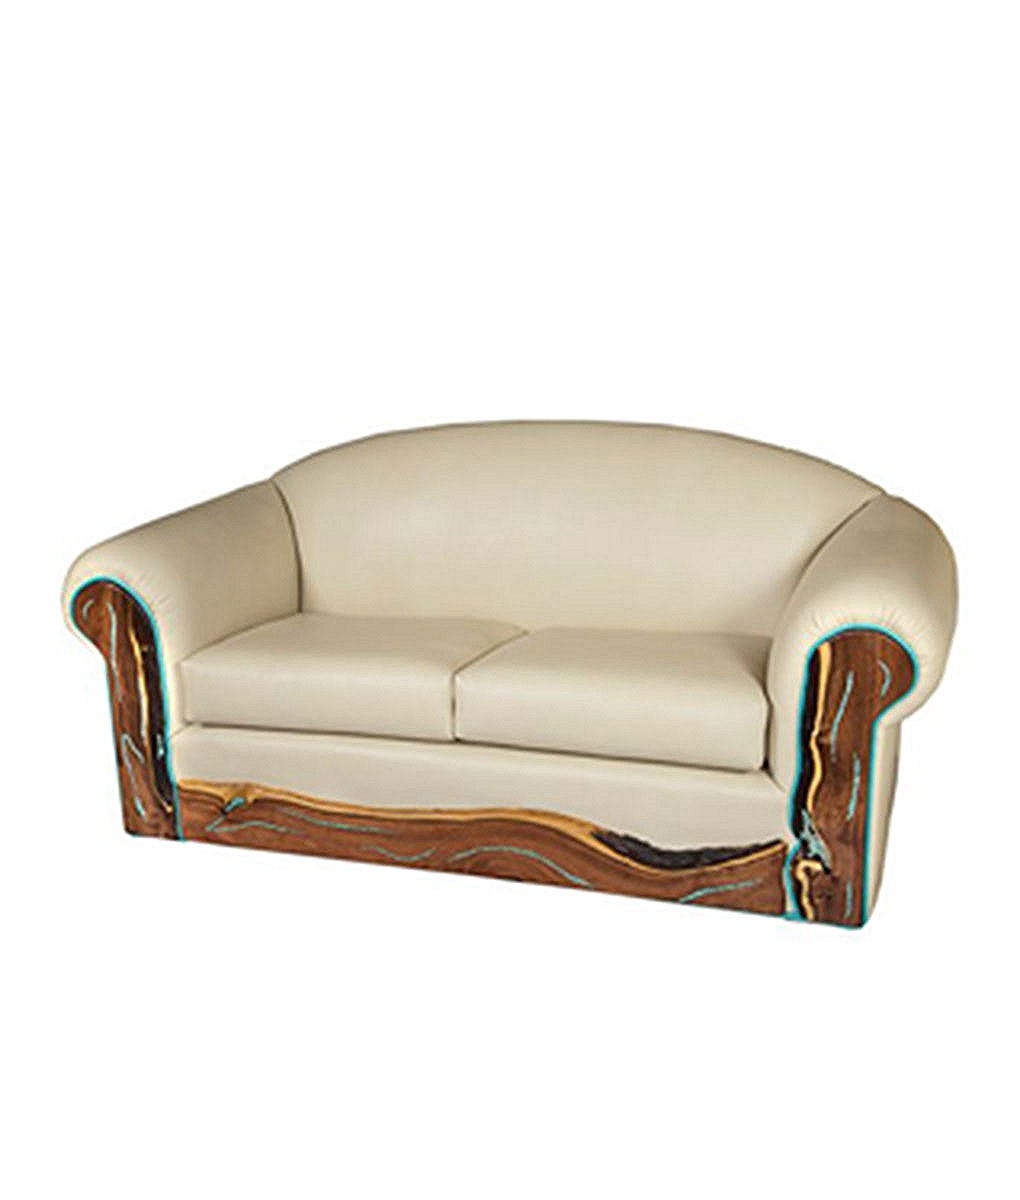 turquoise inlay western leather sofa rustic artistry